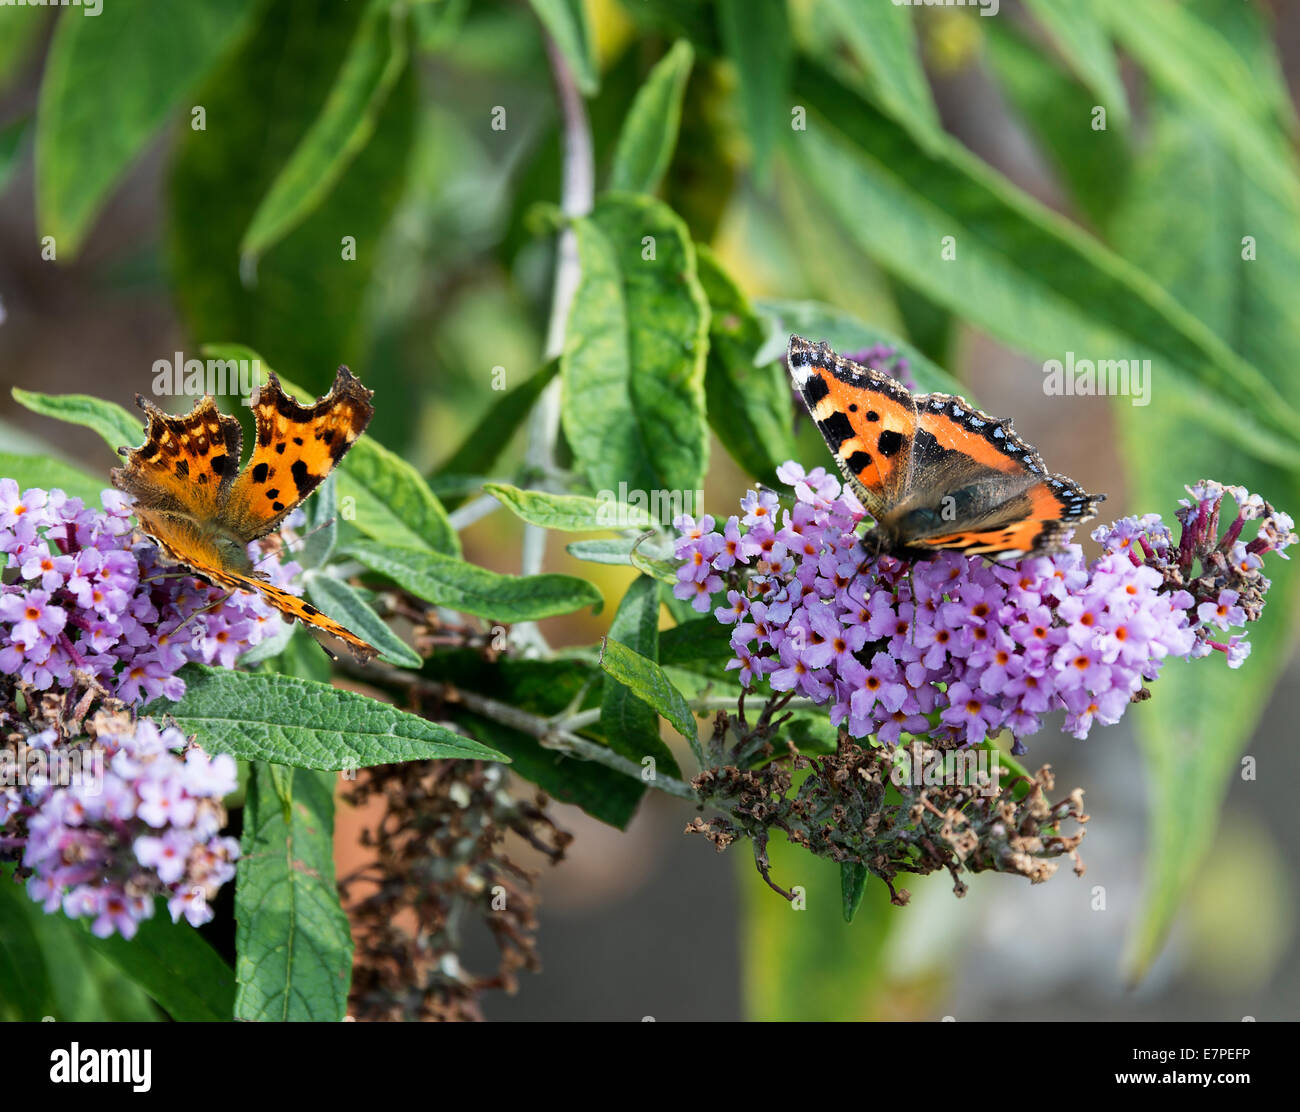 Solitary Comma and Small Tortoiseshell Butterfly Feeding on Nectar on a Purple Buddleja Flower in a Cheshire Garden - Stock Image